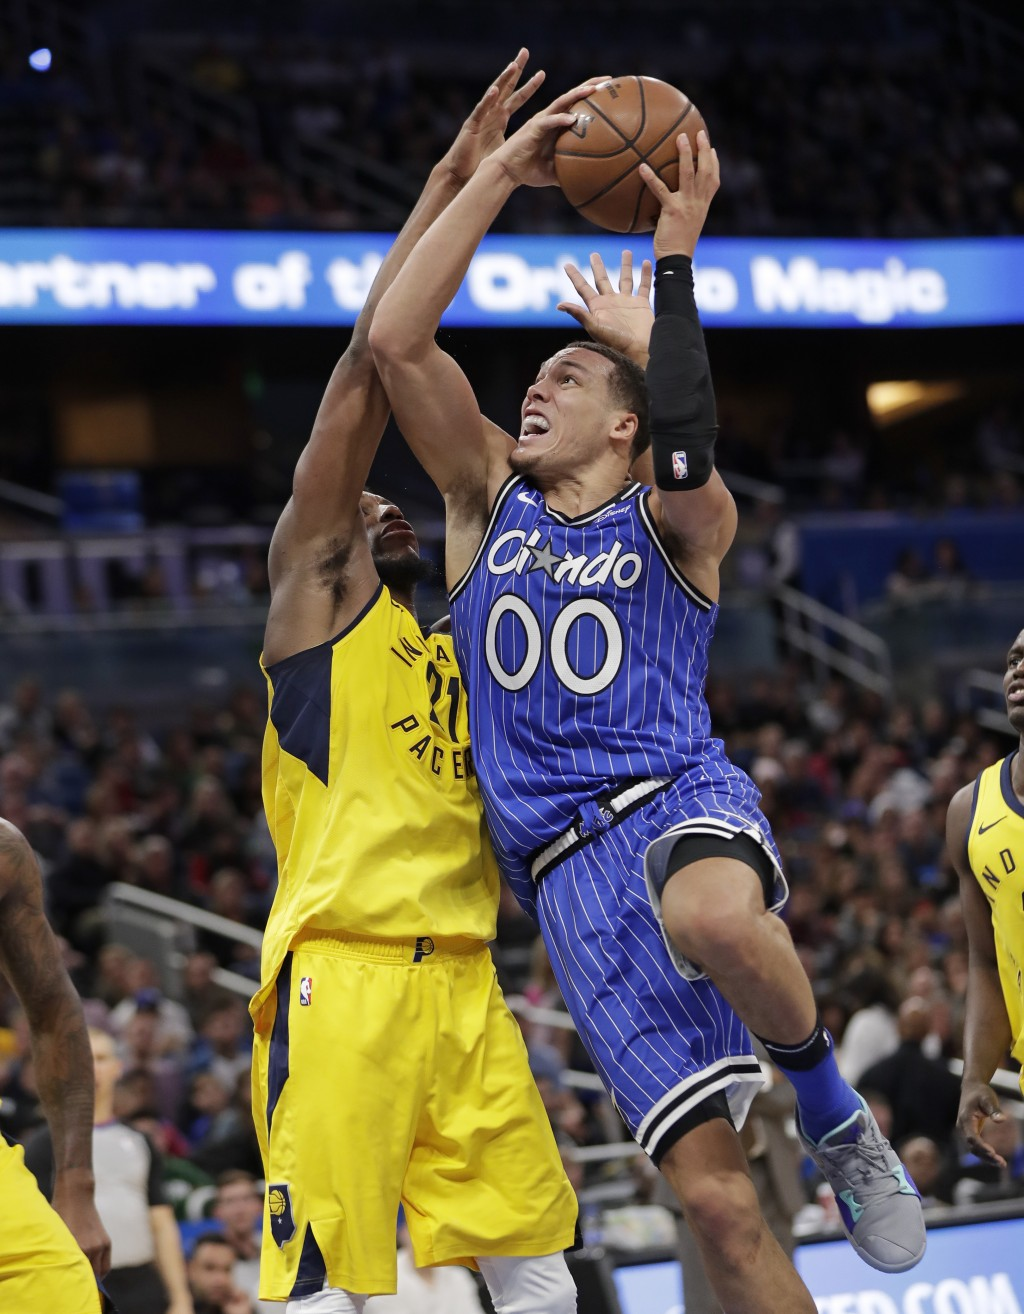 Orlando Magic's Aaron Gordon (00) goes up for a shot against Indiana Pacers' Thaddeus Young during the second half of an NBA basketball game Friday, D